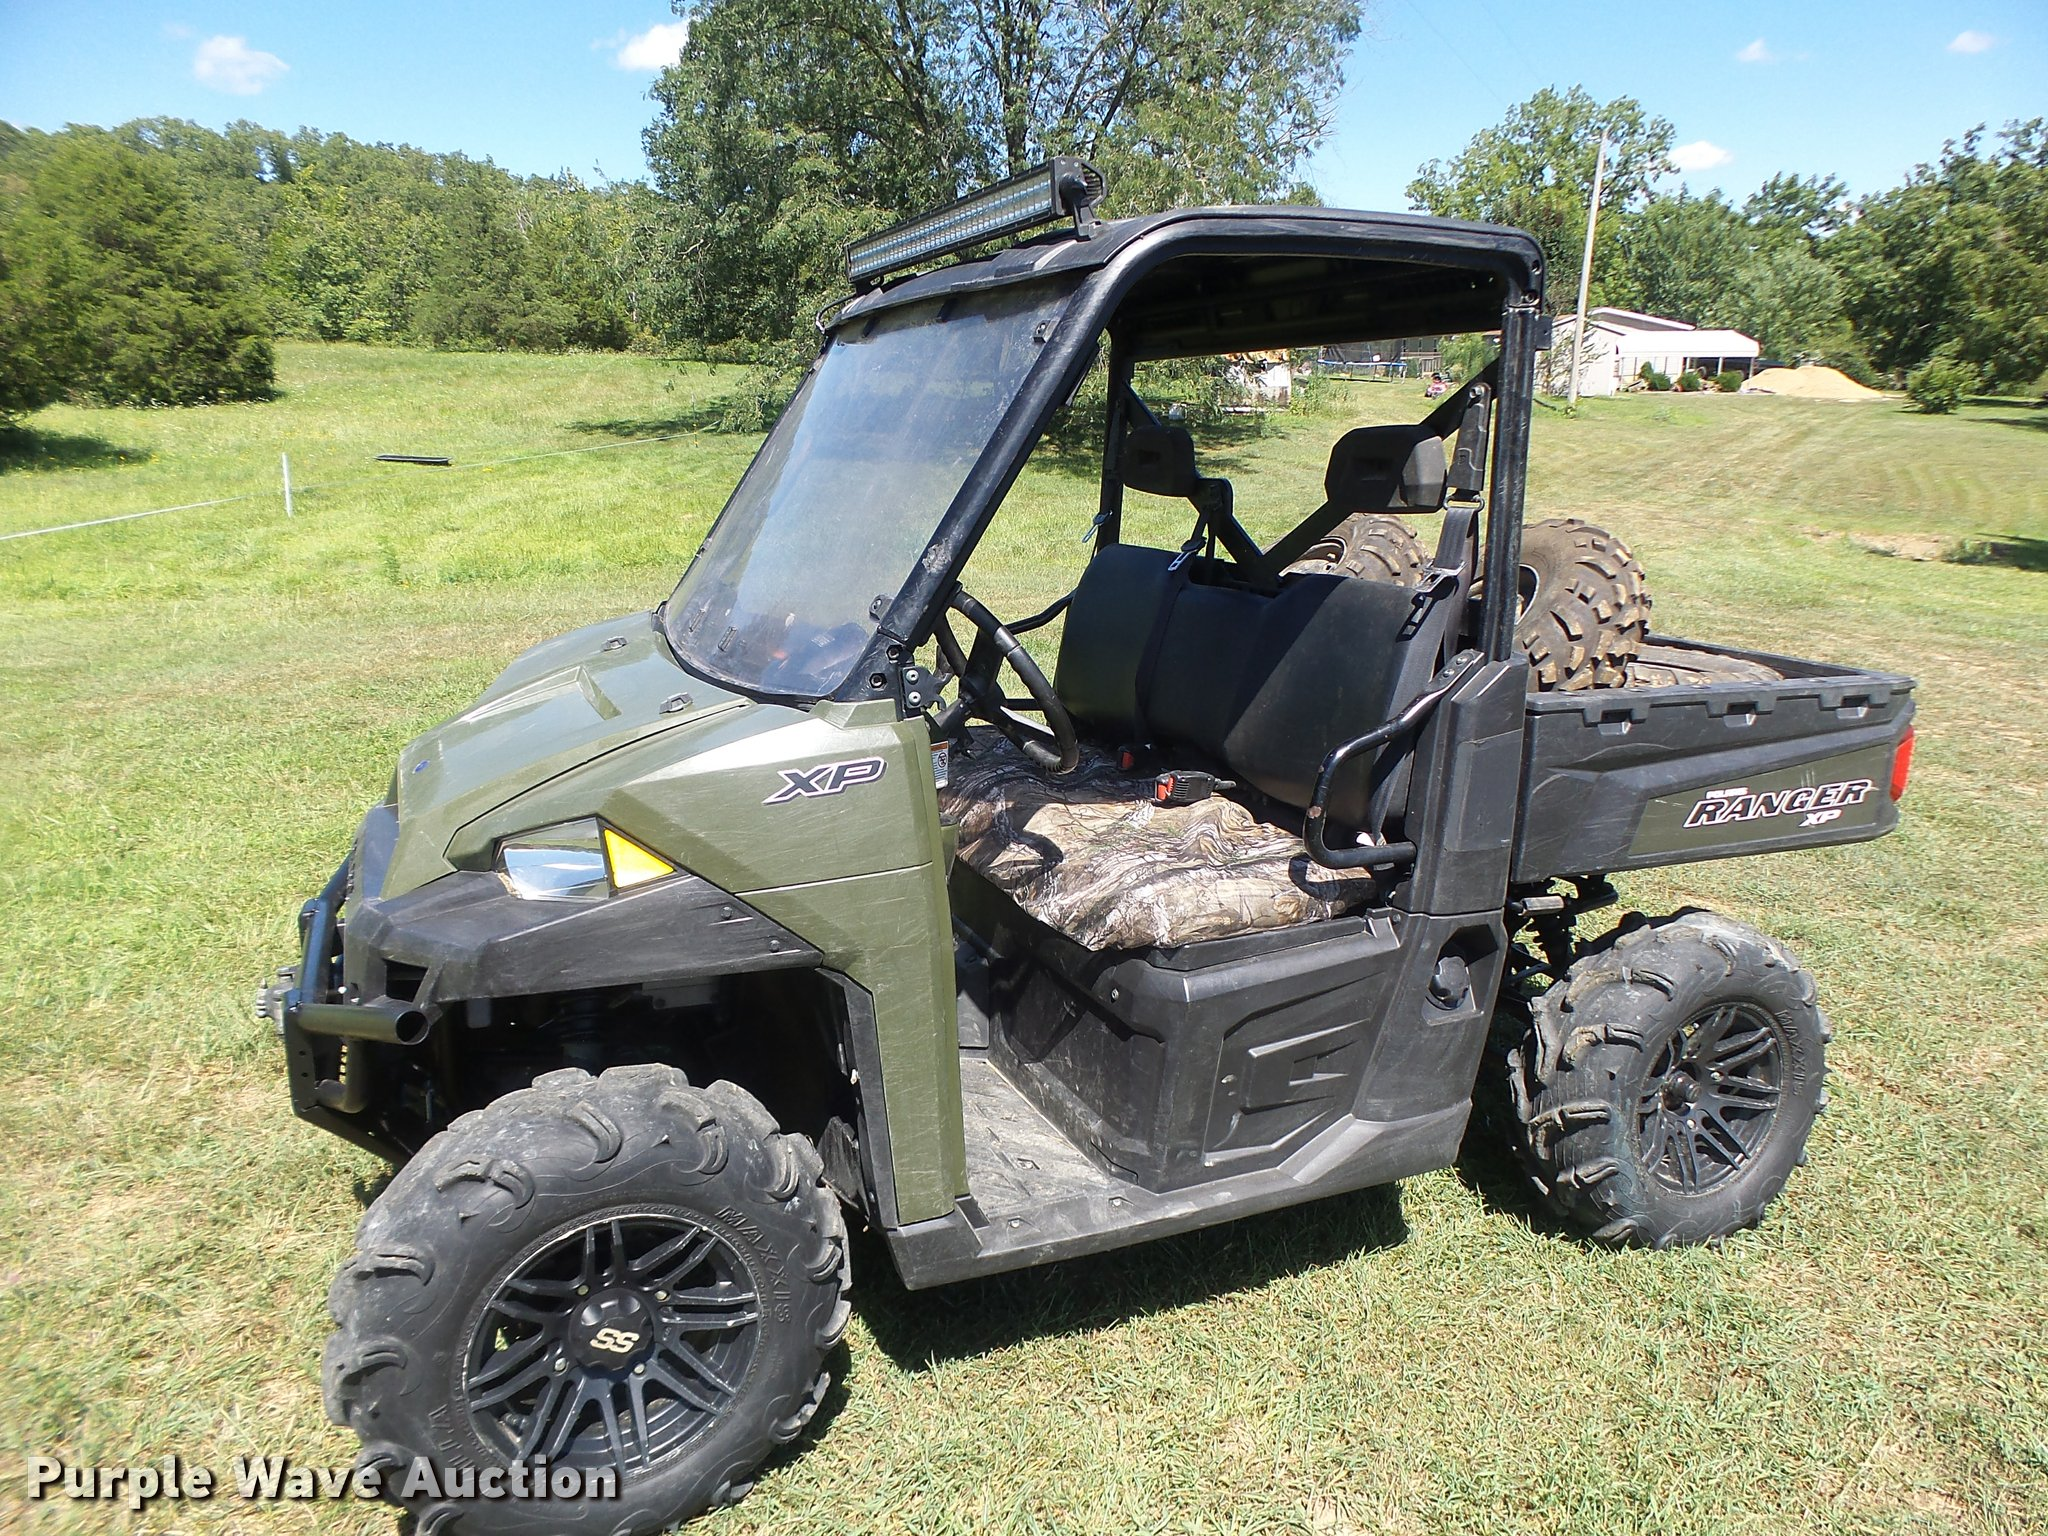 2015 Polaris Ranger >> 2015 Polaris Ranger Xp 900 Utv Item Db5843 Sold August